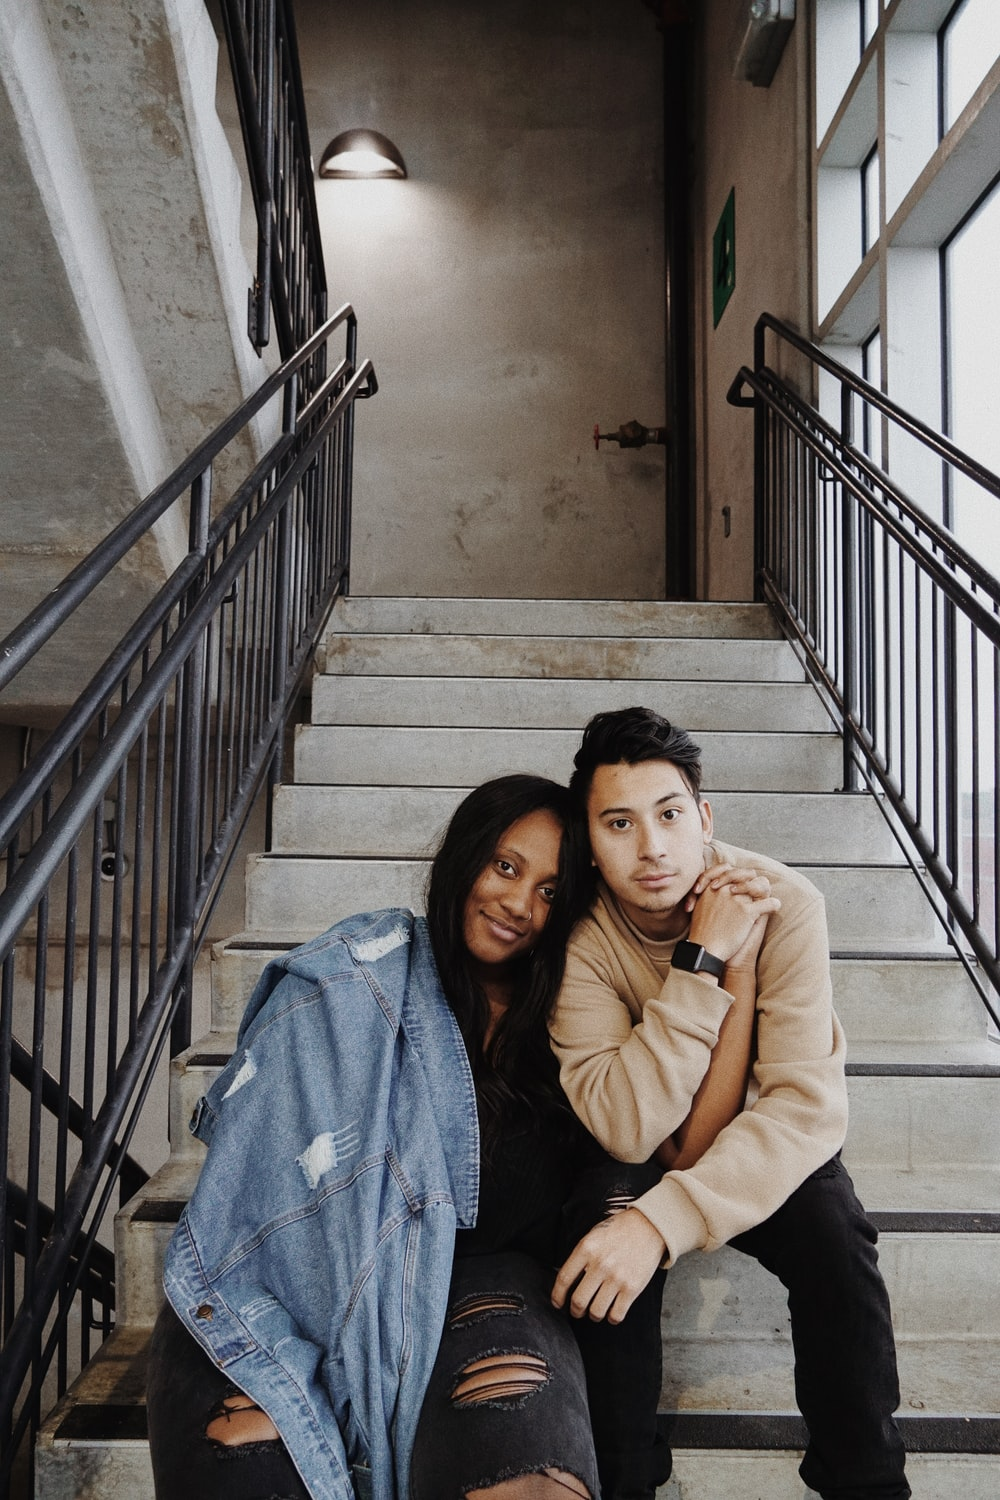 man and woman sitting on concrete steps indoors